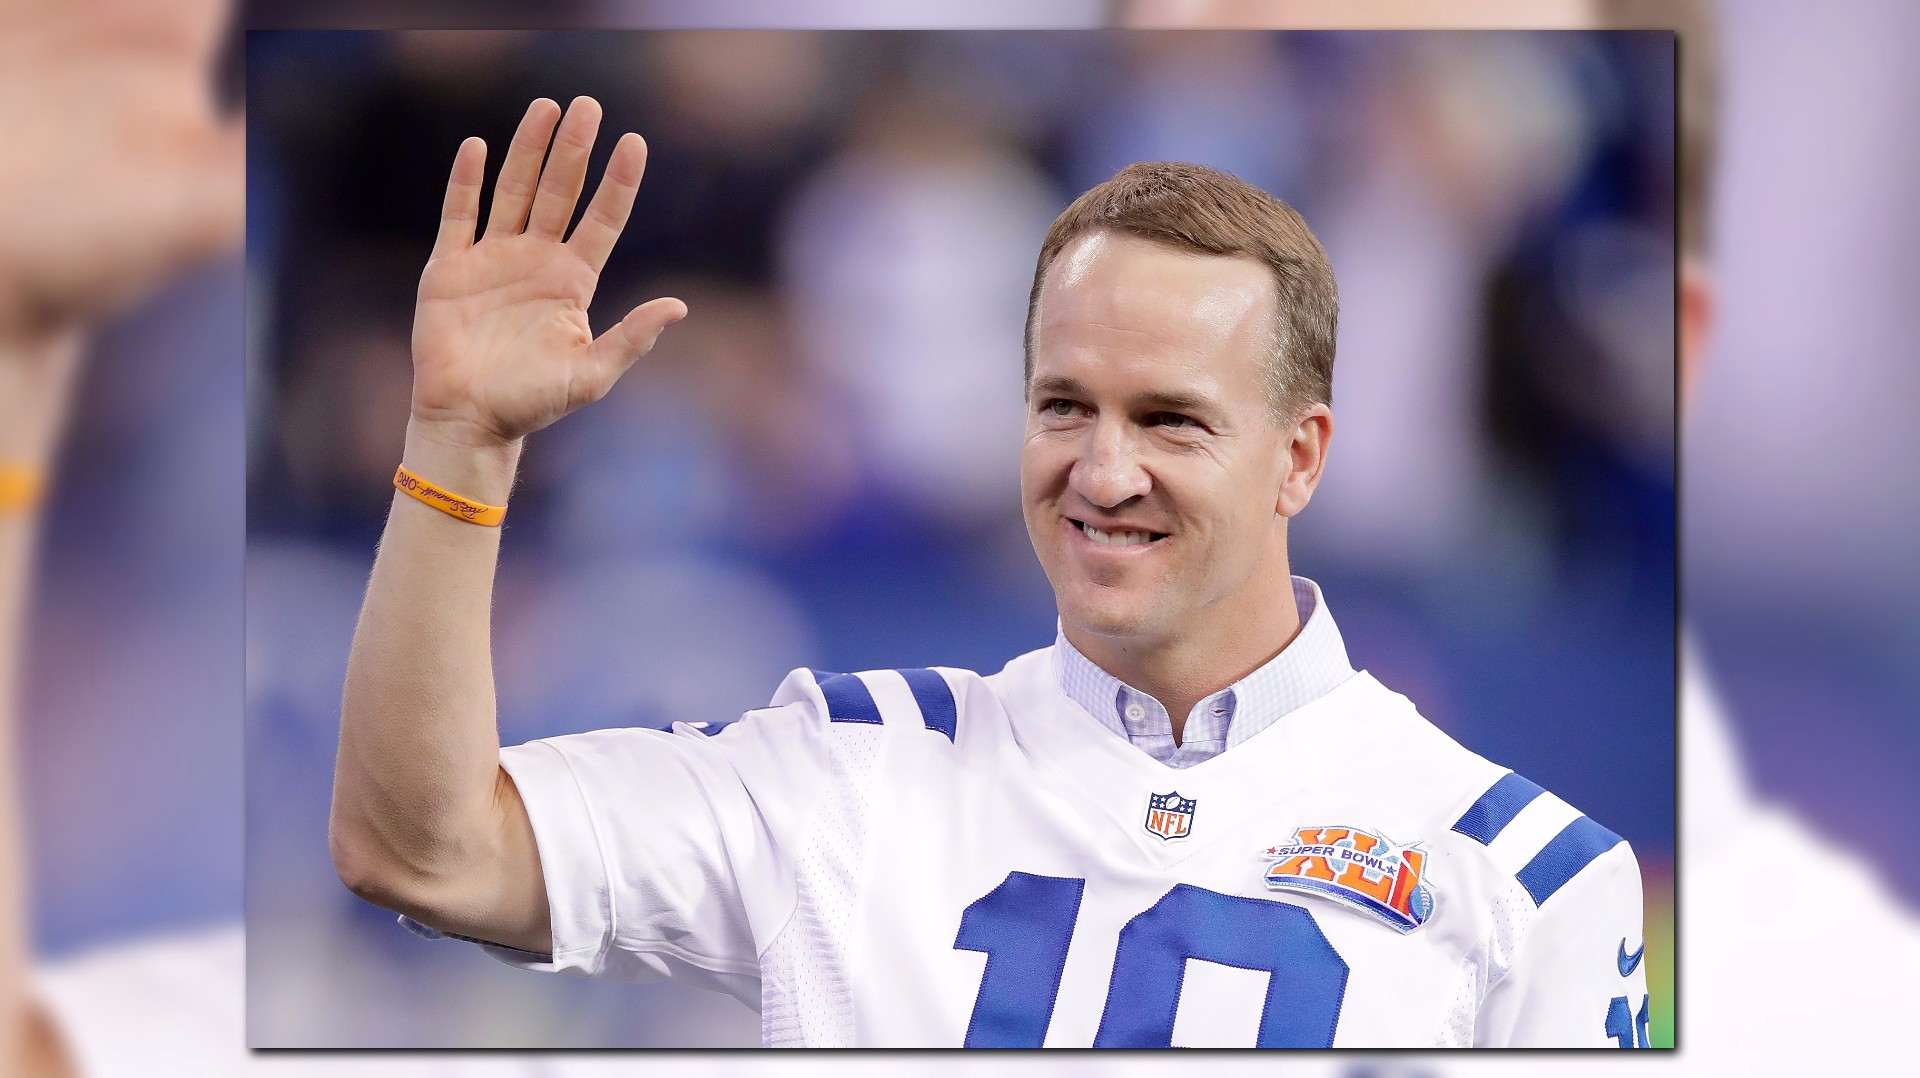 peyton manning Peyton williams manning (born march 24, 1976) is a former american football quarterback who played 18 seasons in the national football league (nfl), primarily with the indianapolis coltsconsidered to be one of the greatest quarterbacks of all time due to his numerous career achievements, he spent 14 seasons with the colts and was a member of the denver broncos in his last four seasons.